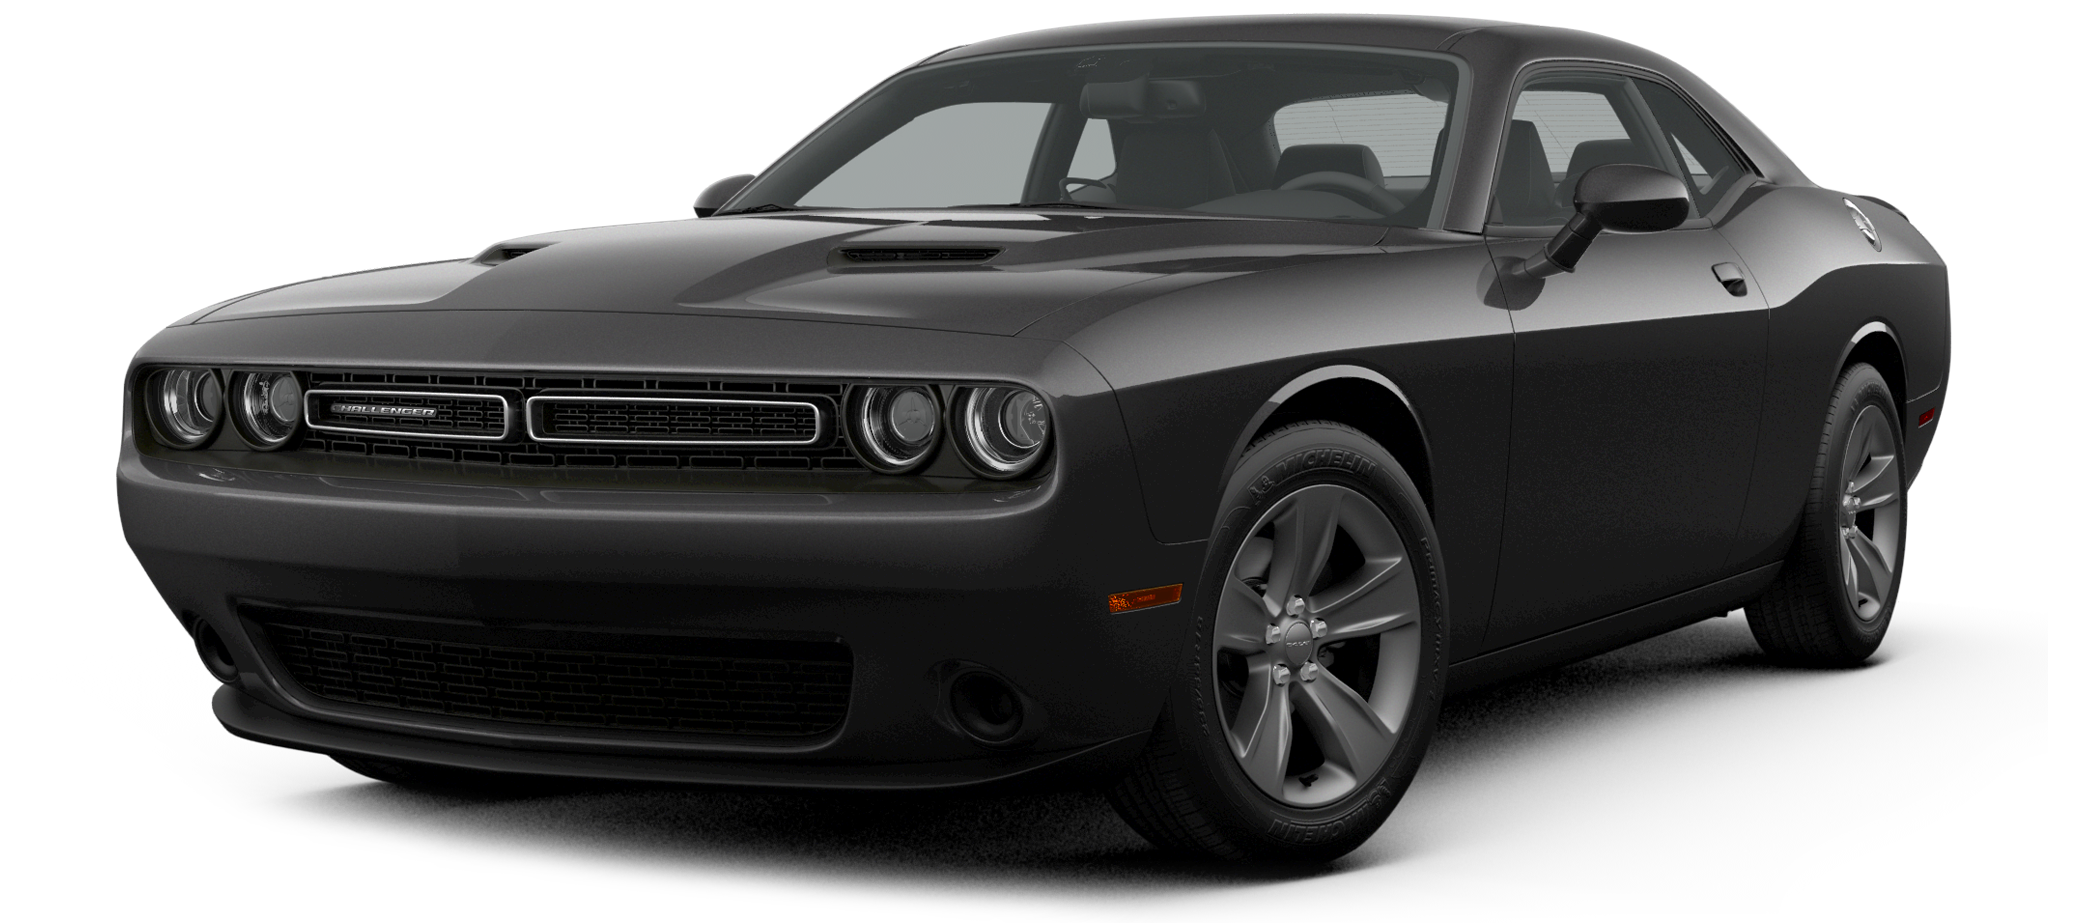 Review & Compare Dodge Challenger at Larry H. Miller Chrysler Jeep Dodge Ram Surprise